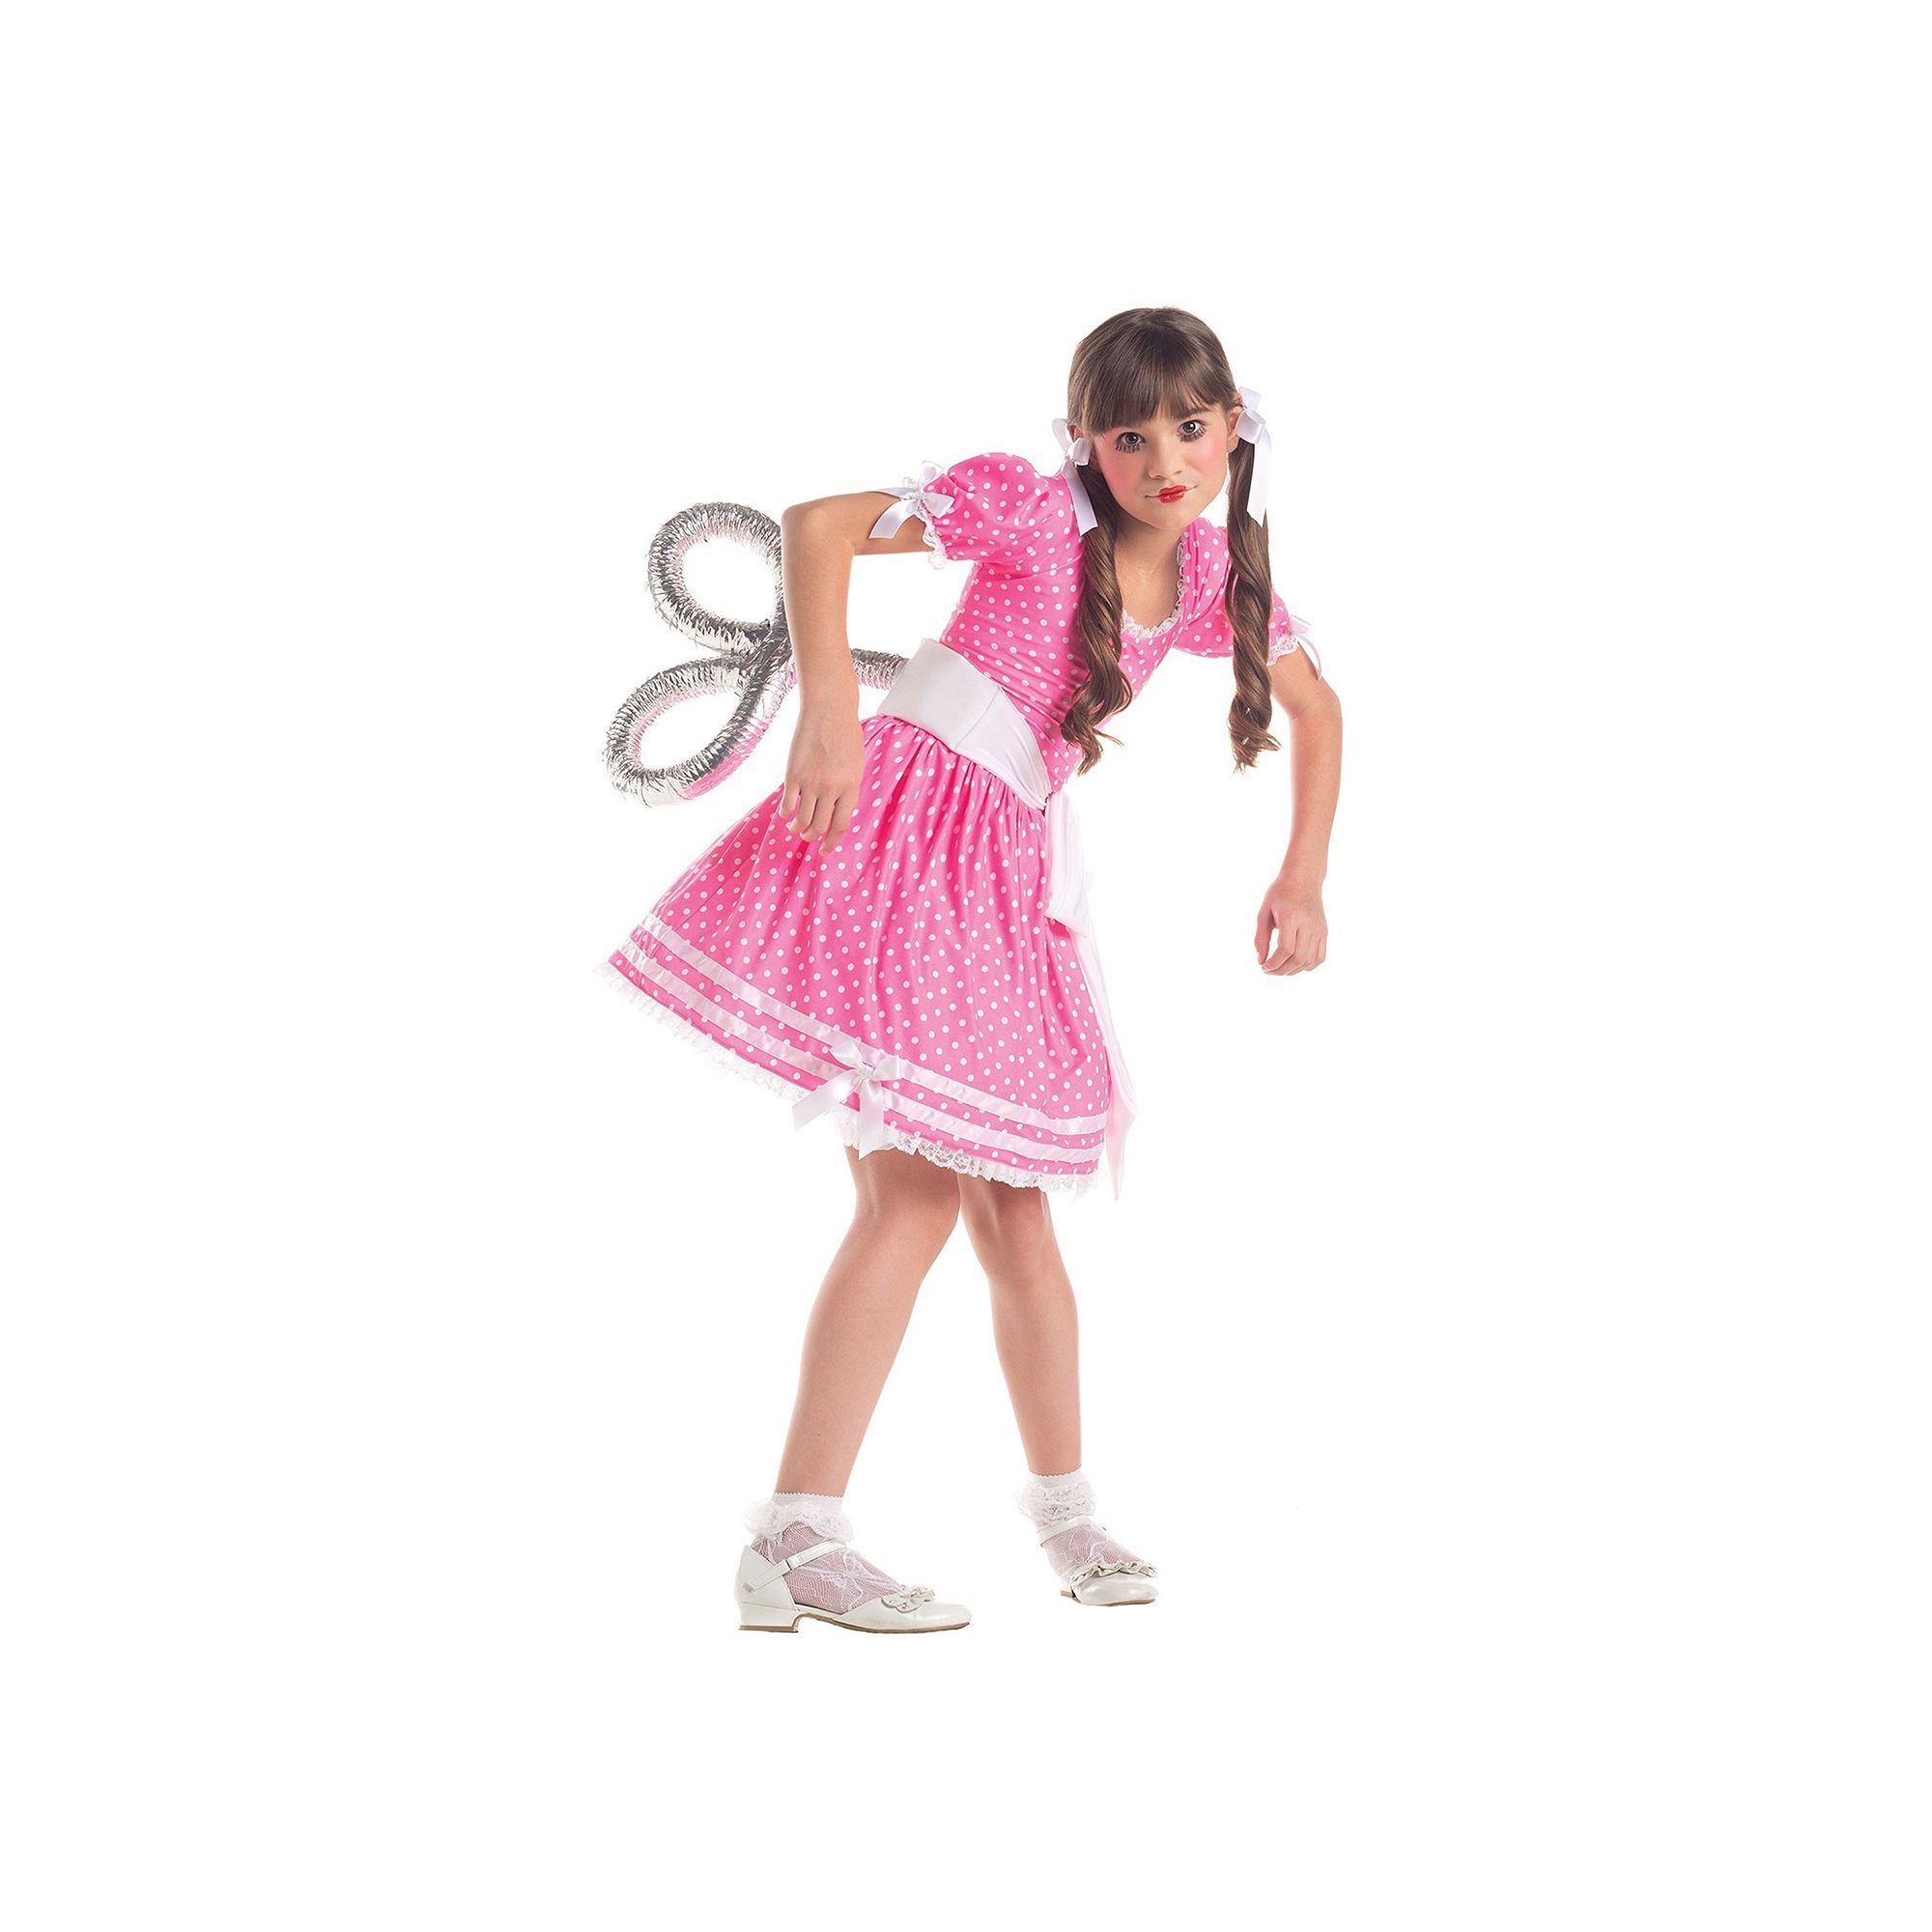 Kids Wind Up Doll Costume Girls Size 8 12 Pink Products